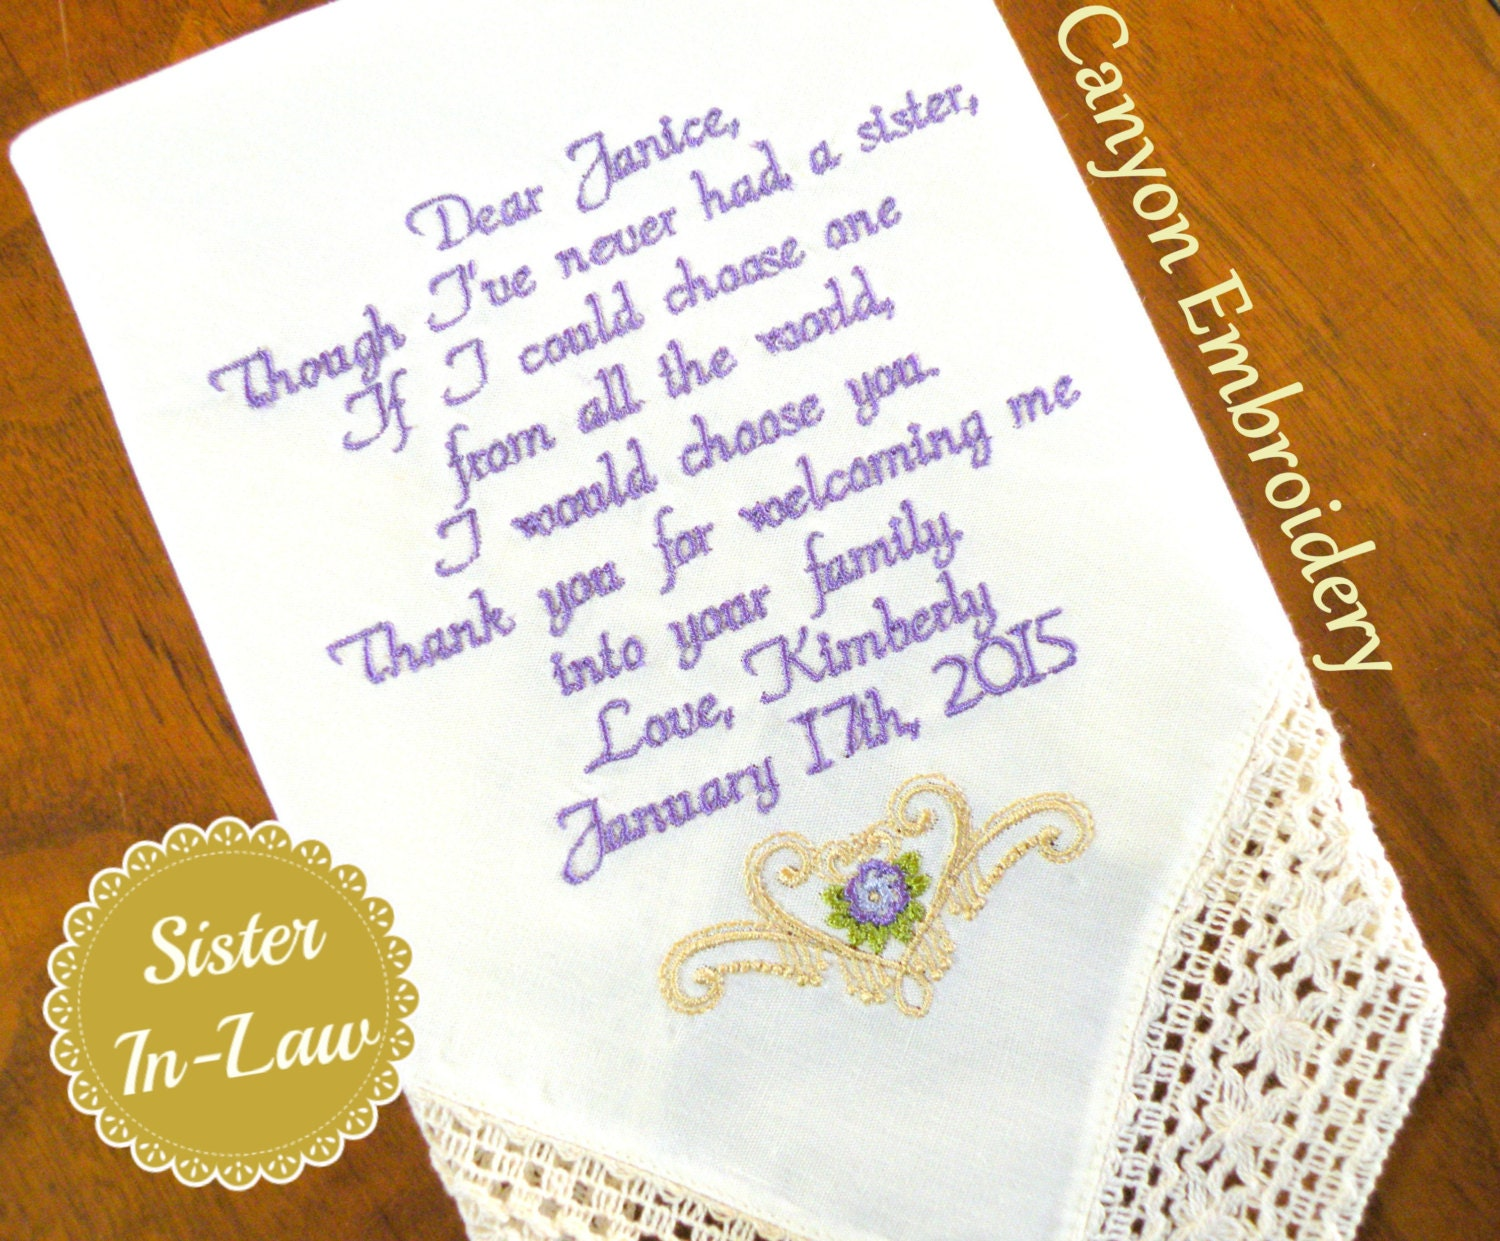 Wedding Gifts For Sisters: Sister Sister In-Law Wedding Gift Embroidered Wedding